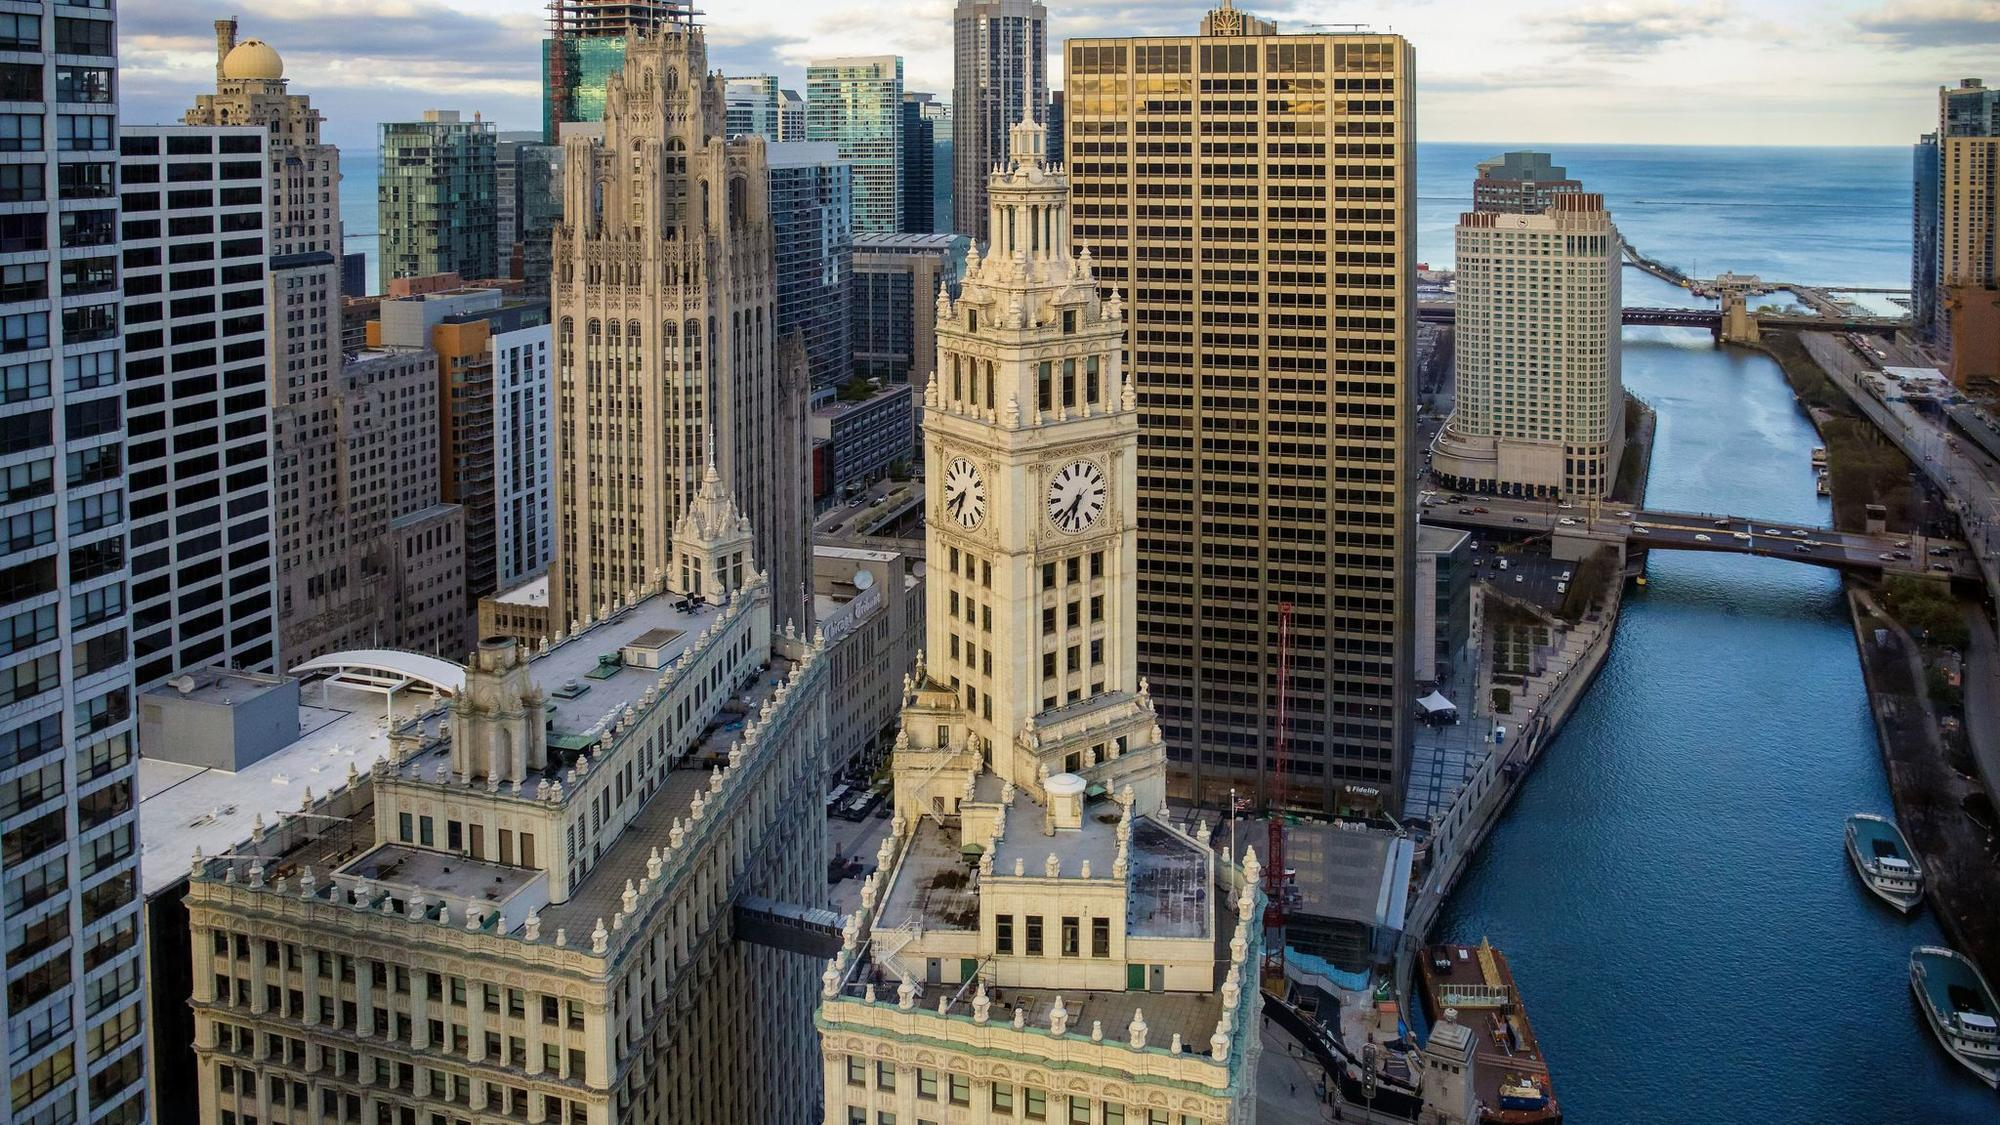 Iconic Wrigley Building Expected To Go Up For Sale  Could